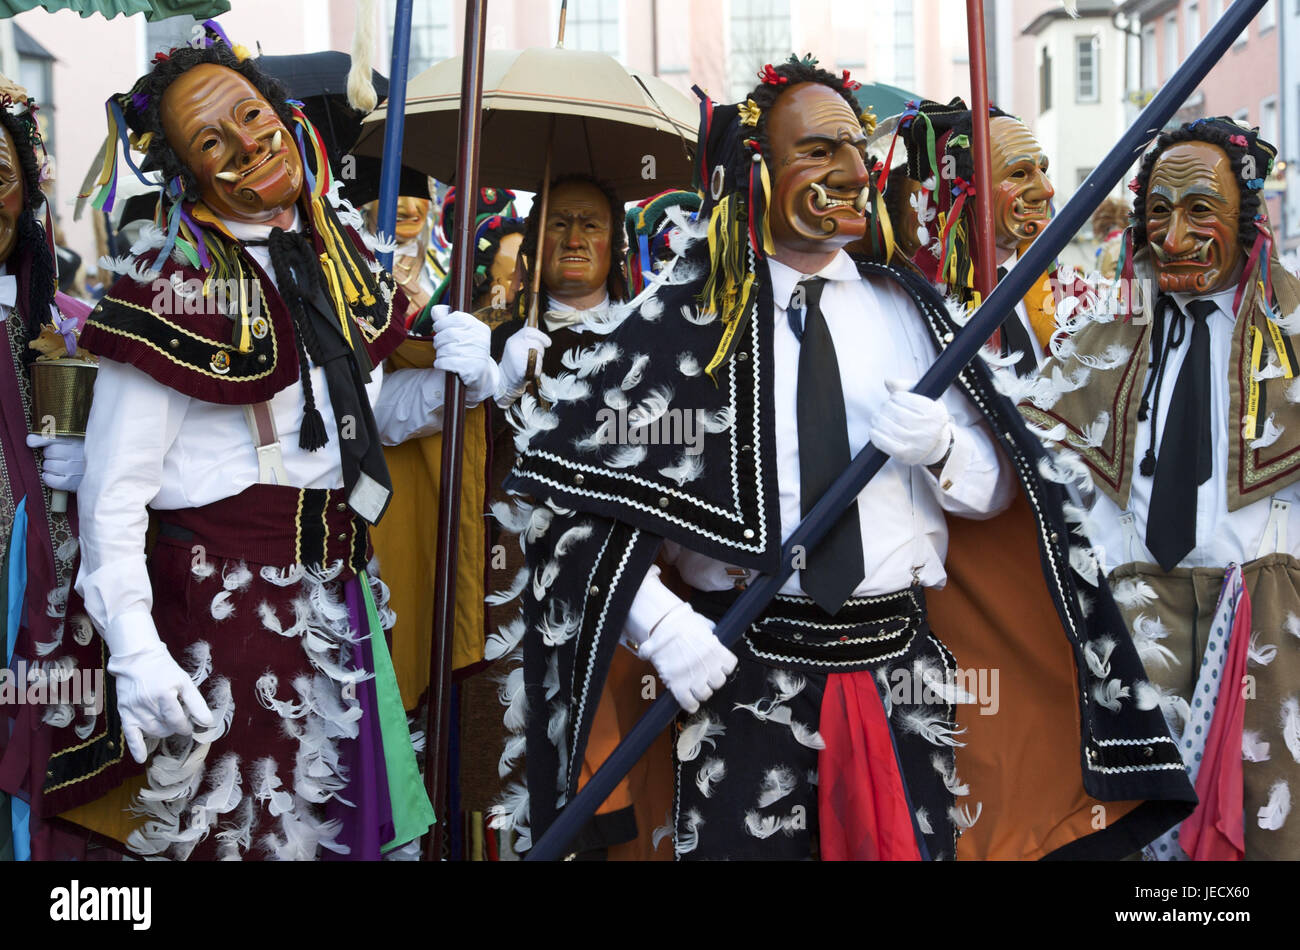 Allemagne, Bade-Wurtemberg, Rottweil, Rottweiler fool's Guild, faire Federahannes plusieurs non-sens, Photo Stock